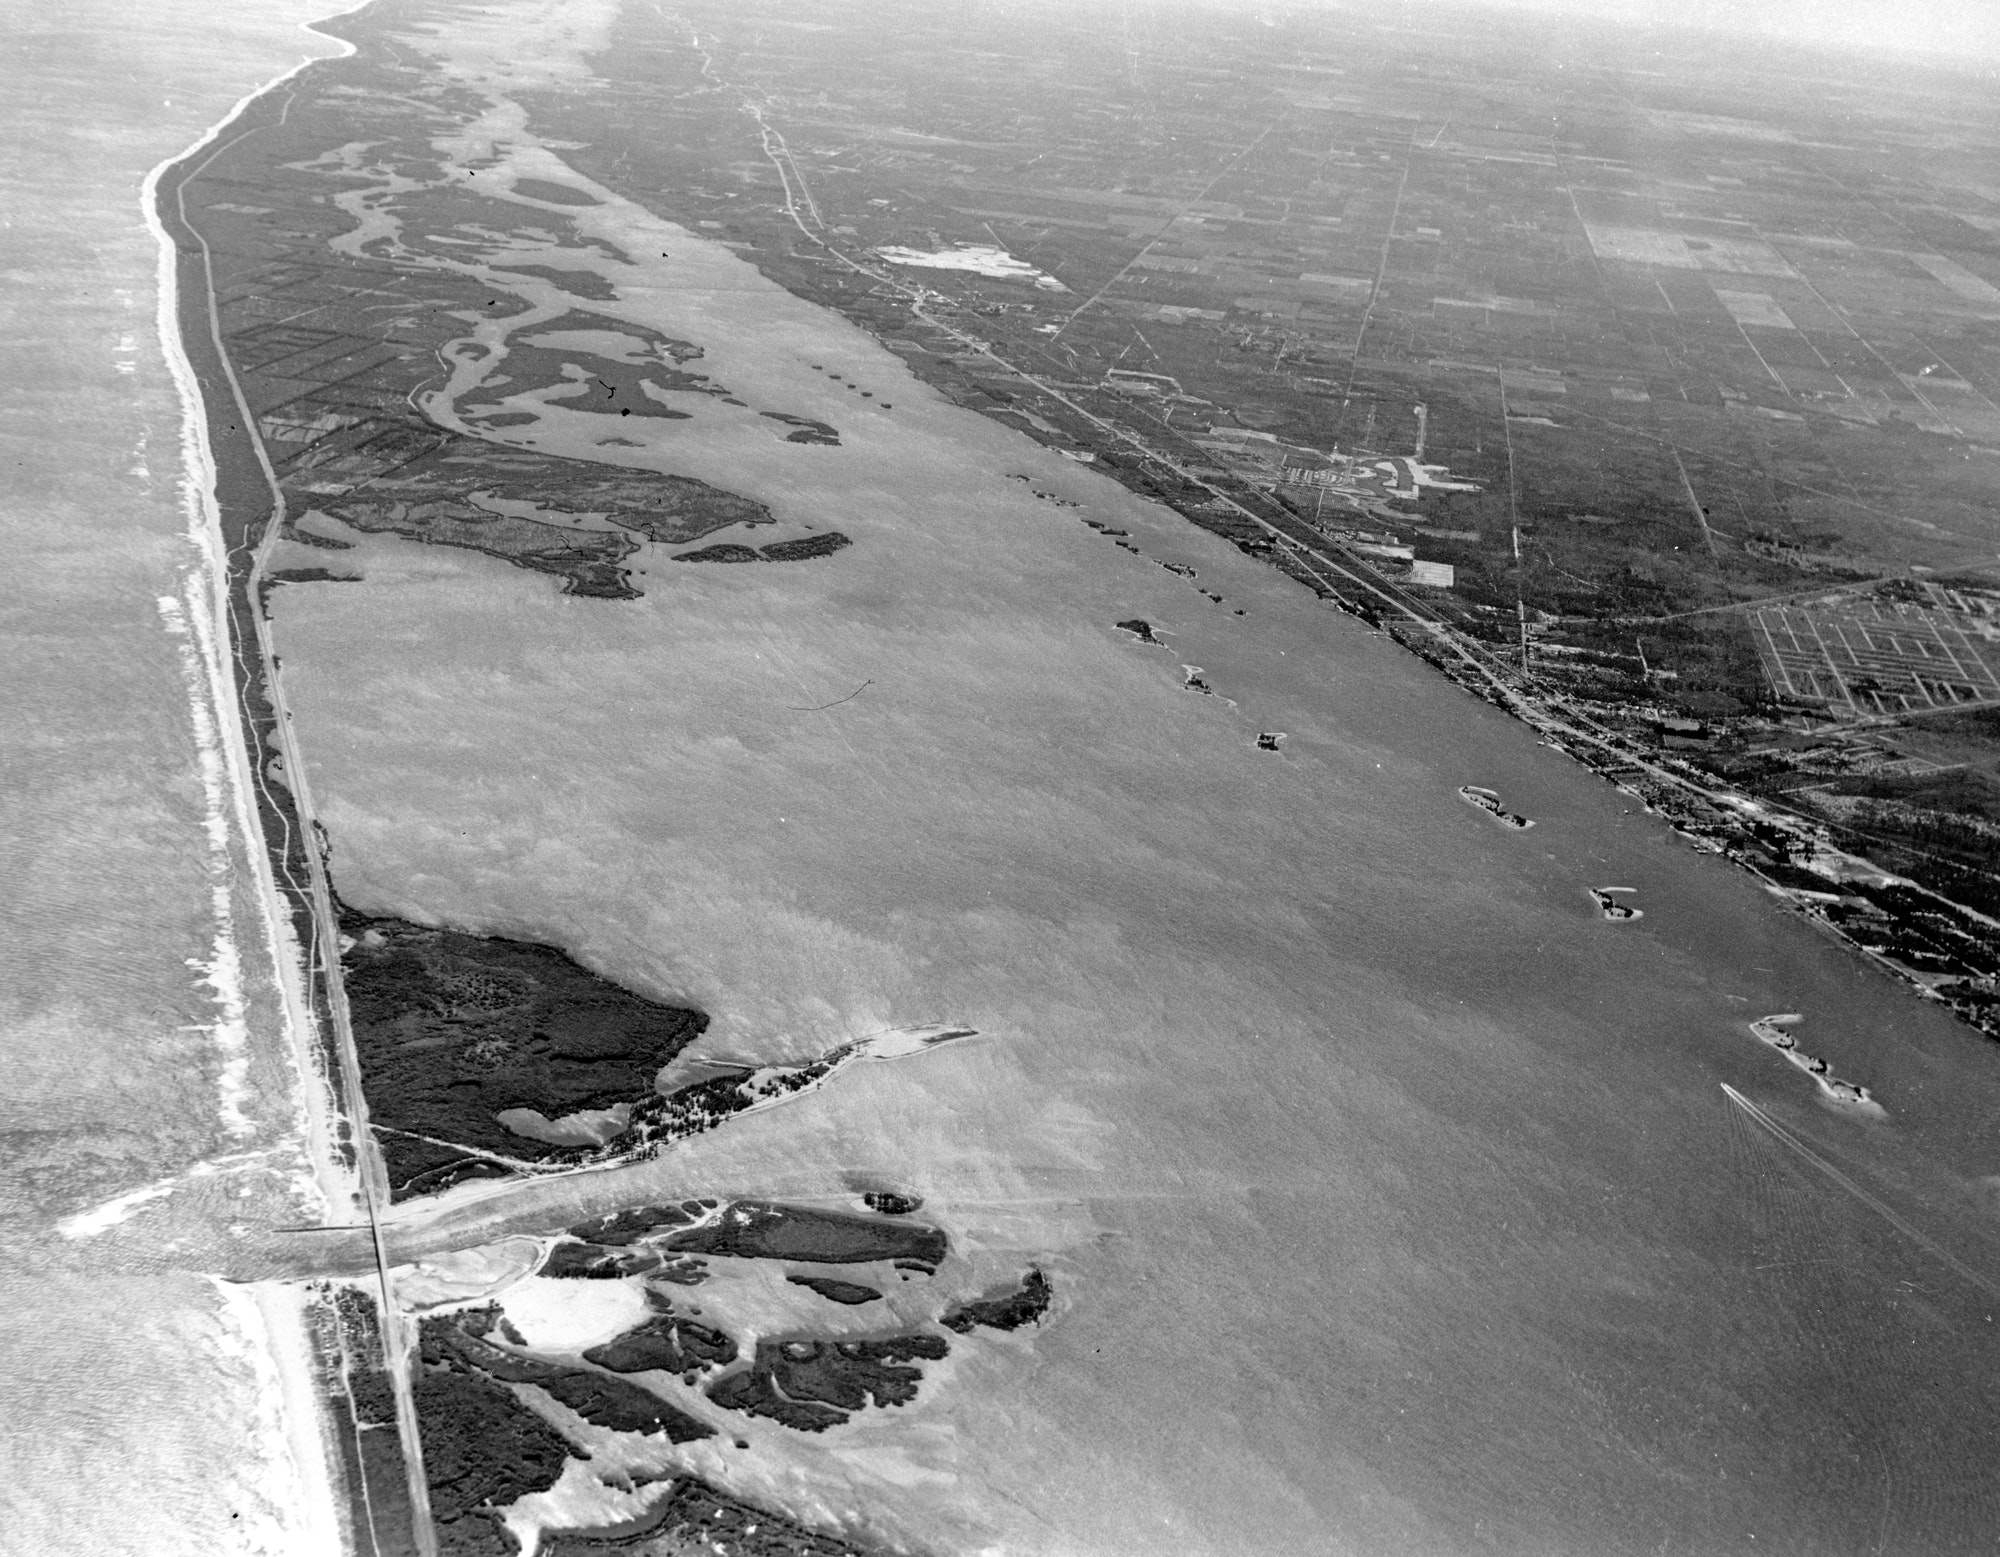 high altitude aerial view of the Sebastian Inlet from 1966 looking South over the lagoon and coastline